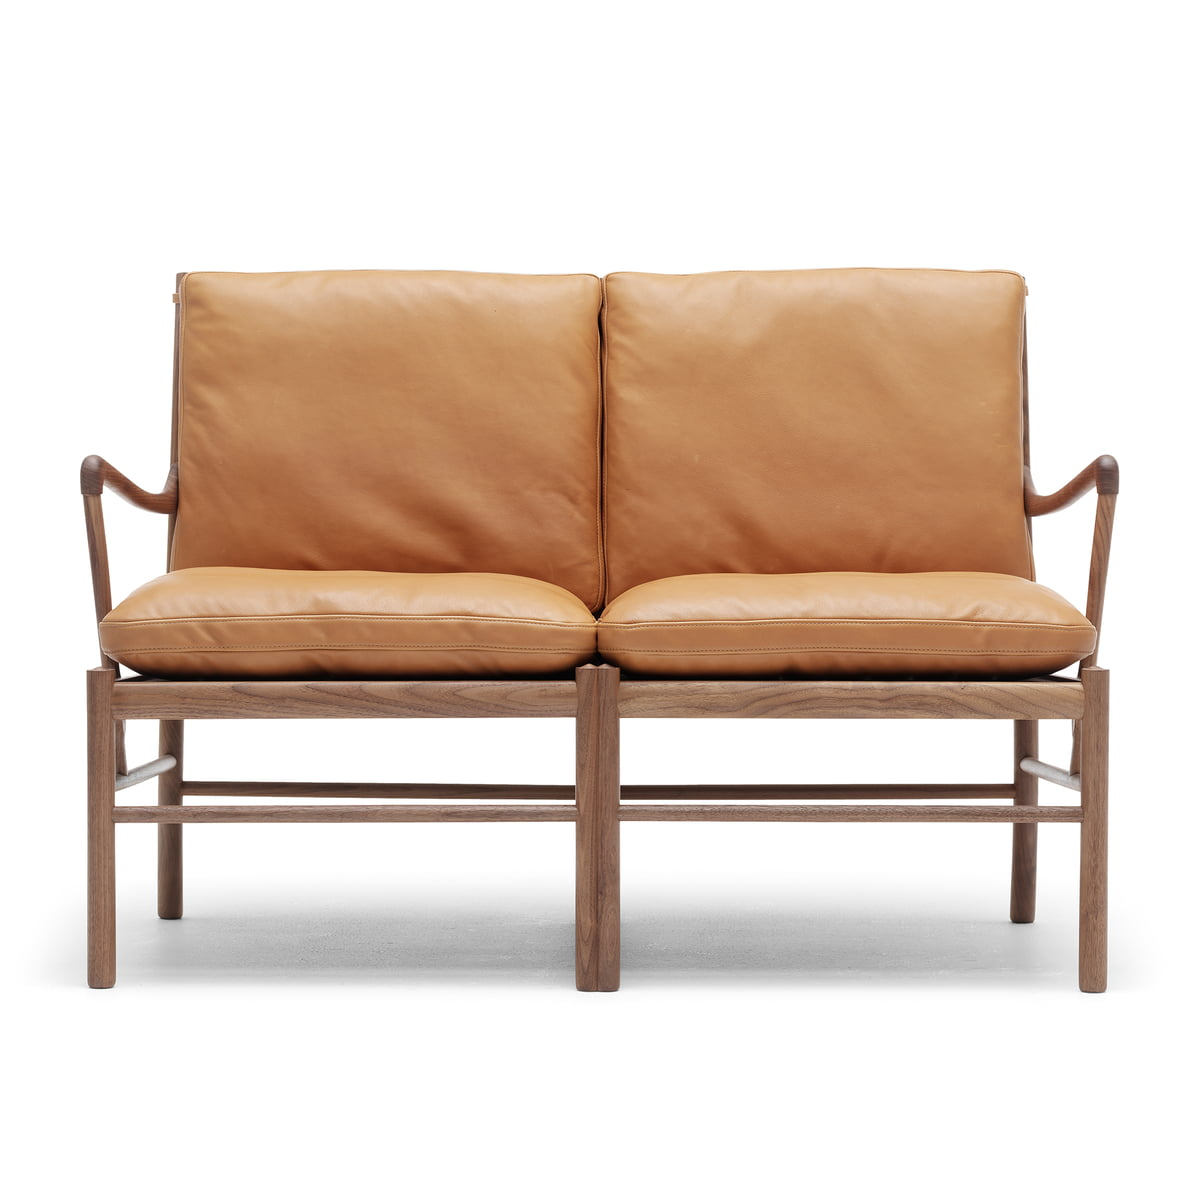 Ow149 2 Colonial Sofa By Carl Hansen Made From Oiled Oak And Leather Sif 95